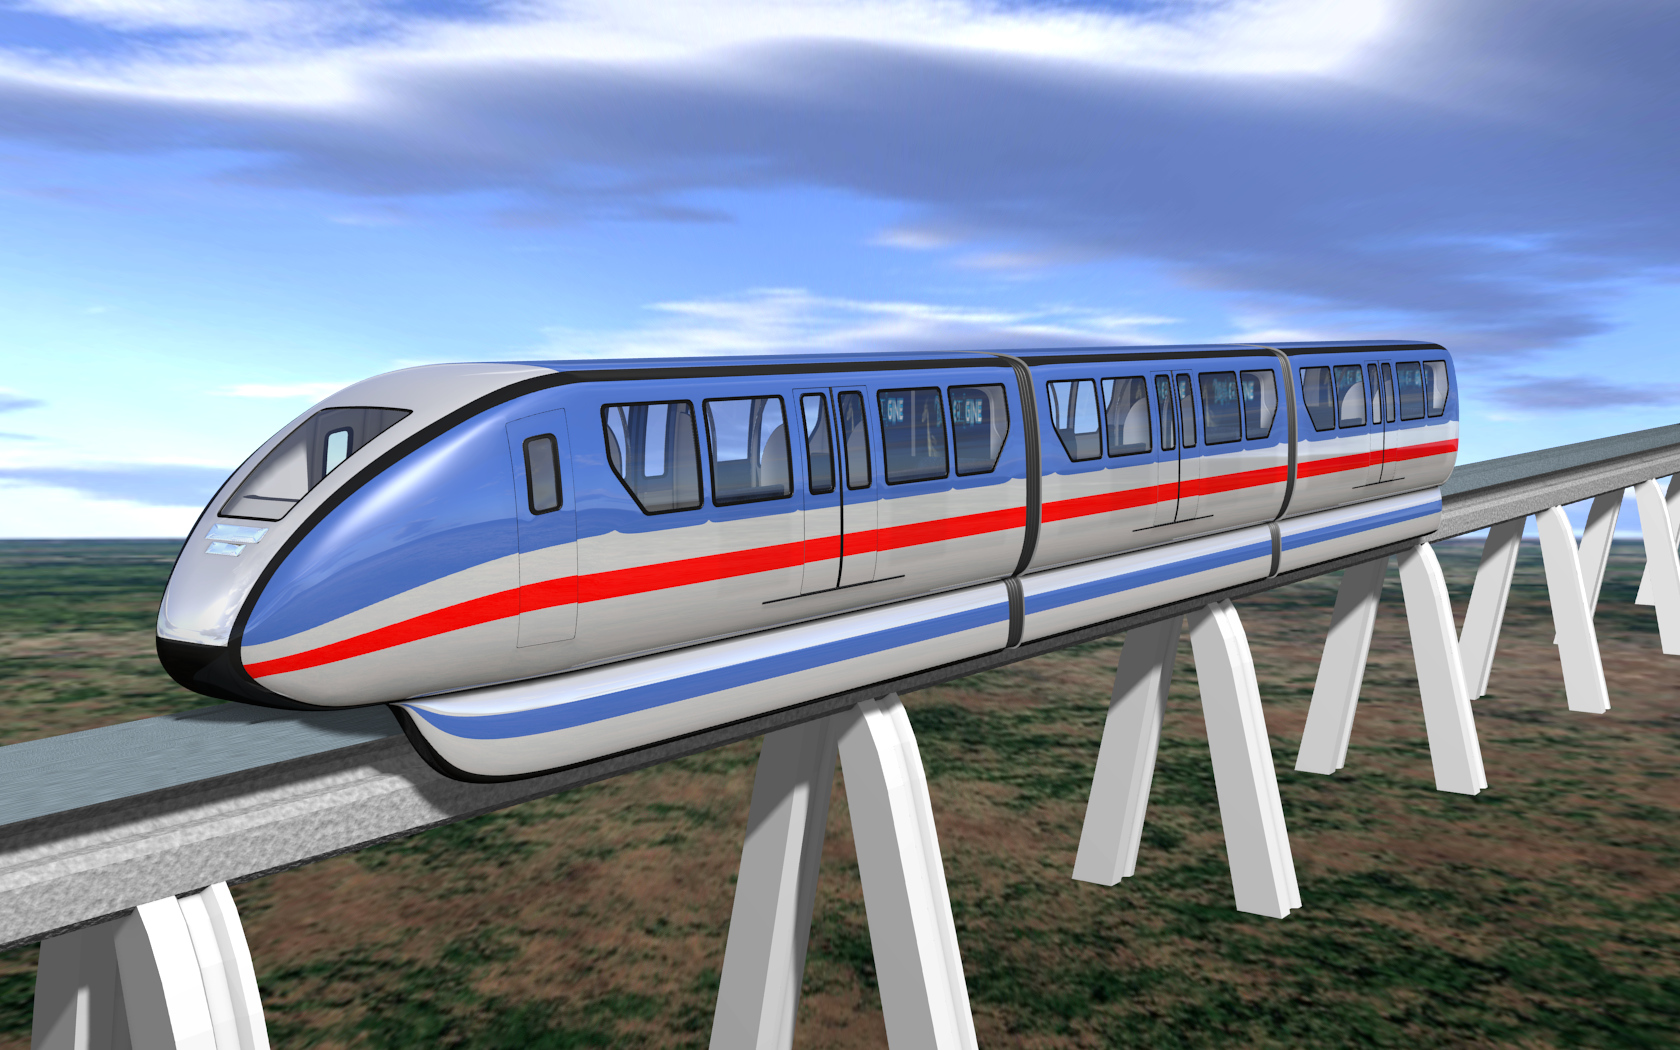 City Monorail (Cimo)